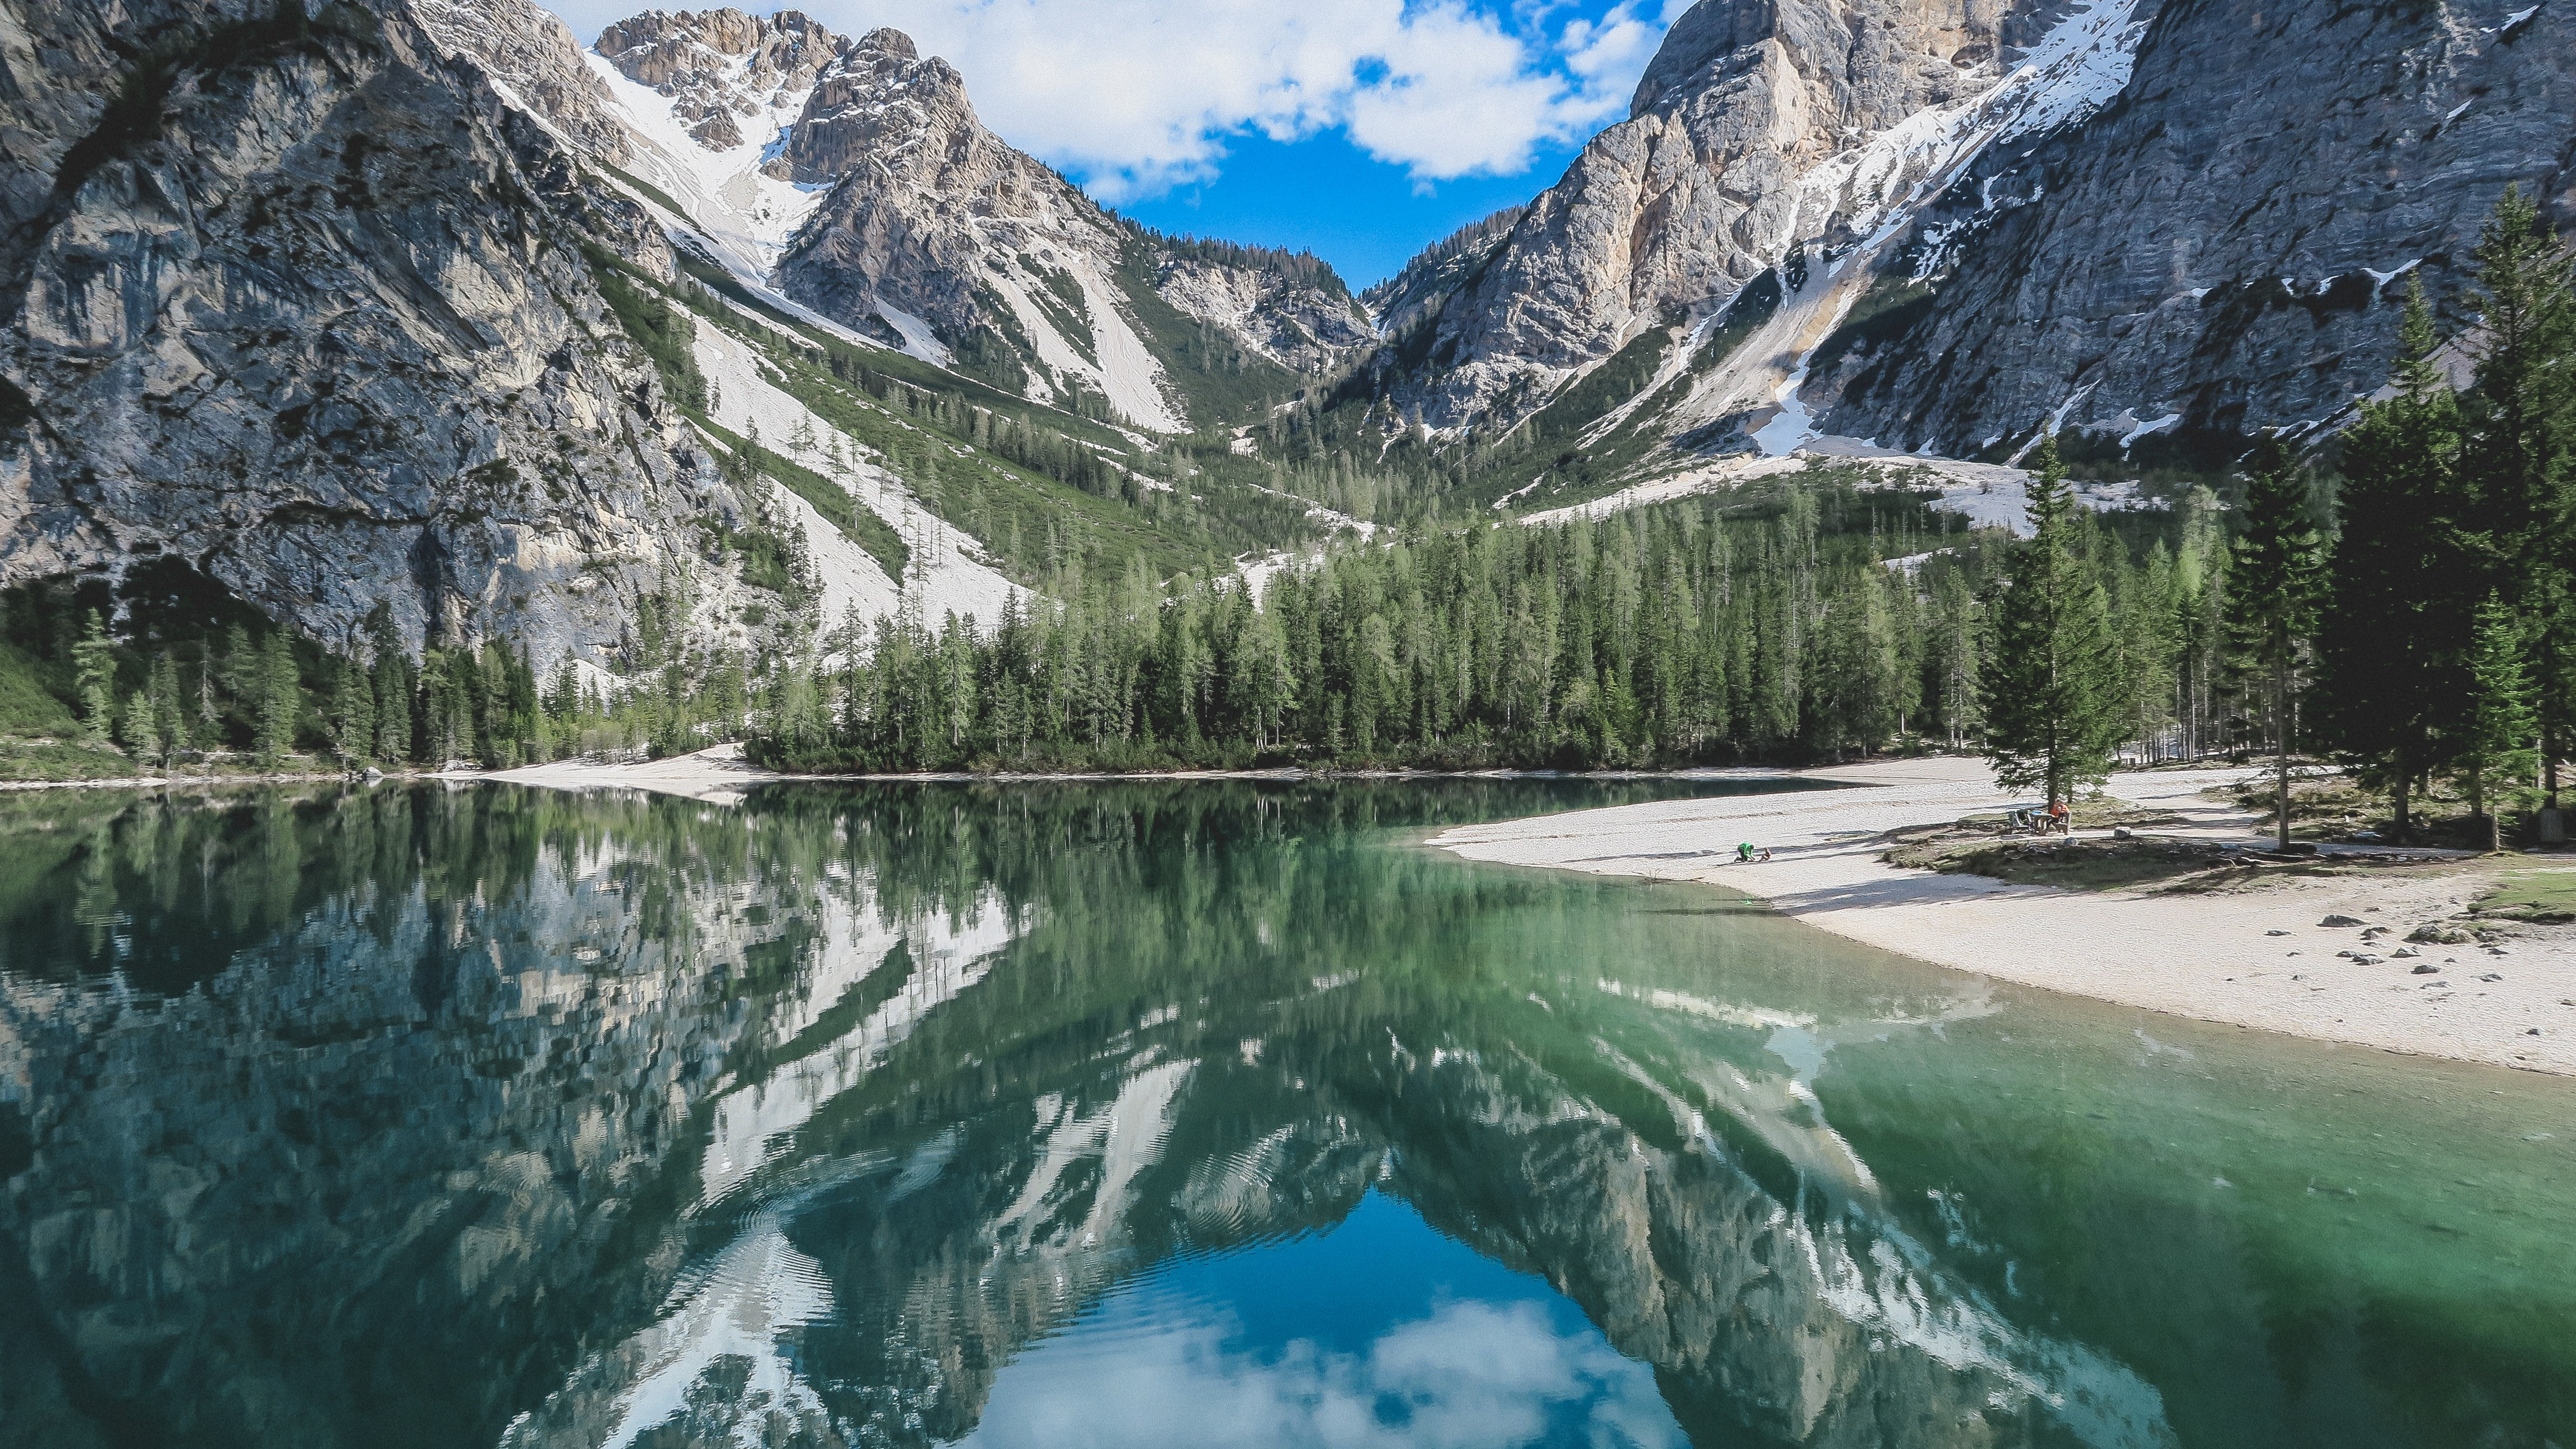 Mountain reflected in the emerald-green surface of the Pragser Wildsee lake